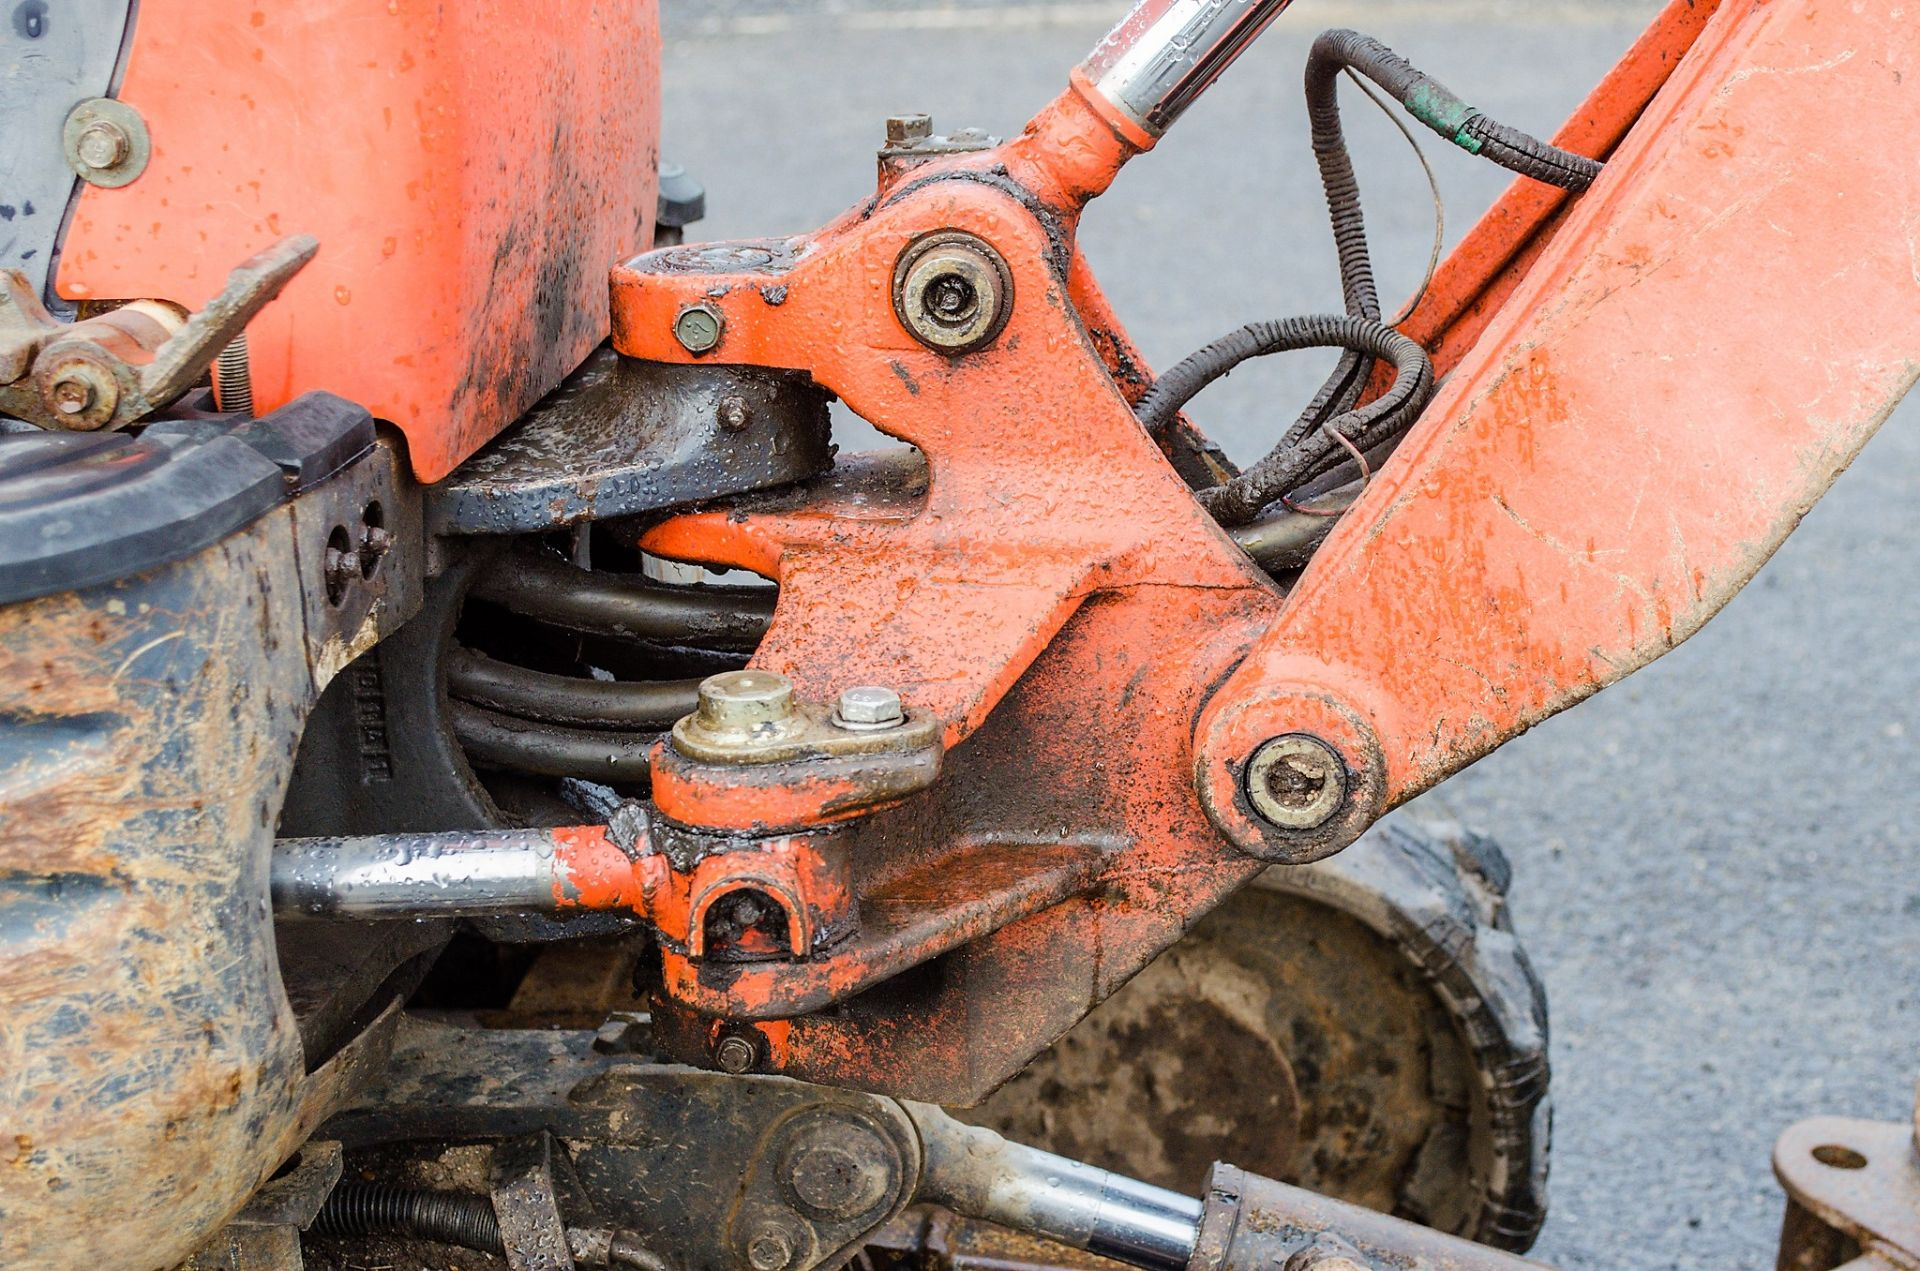 Lot 25 - Kubota KX008-3 0.8 tonne rubber tracked micro excavator Year: 2006 S/N: Recorded Hours: 4224